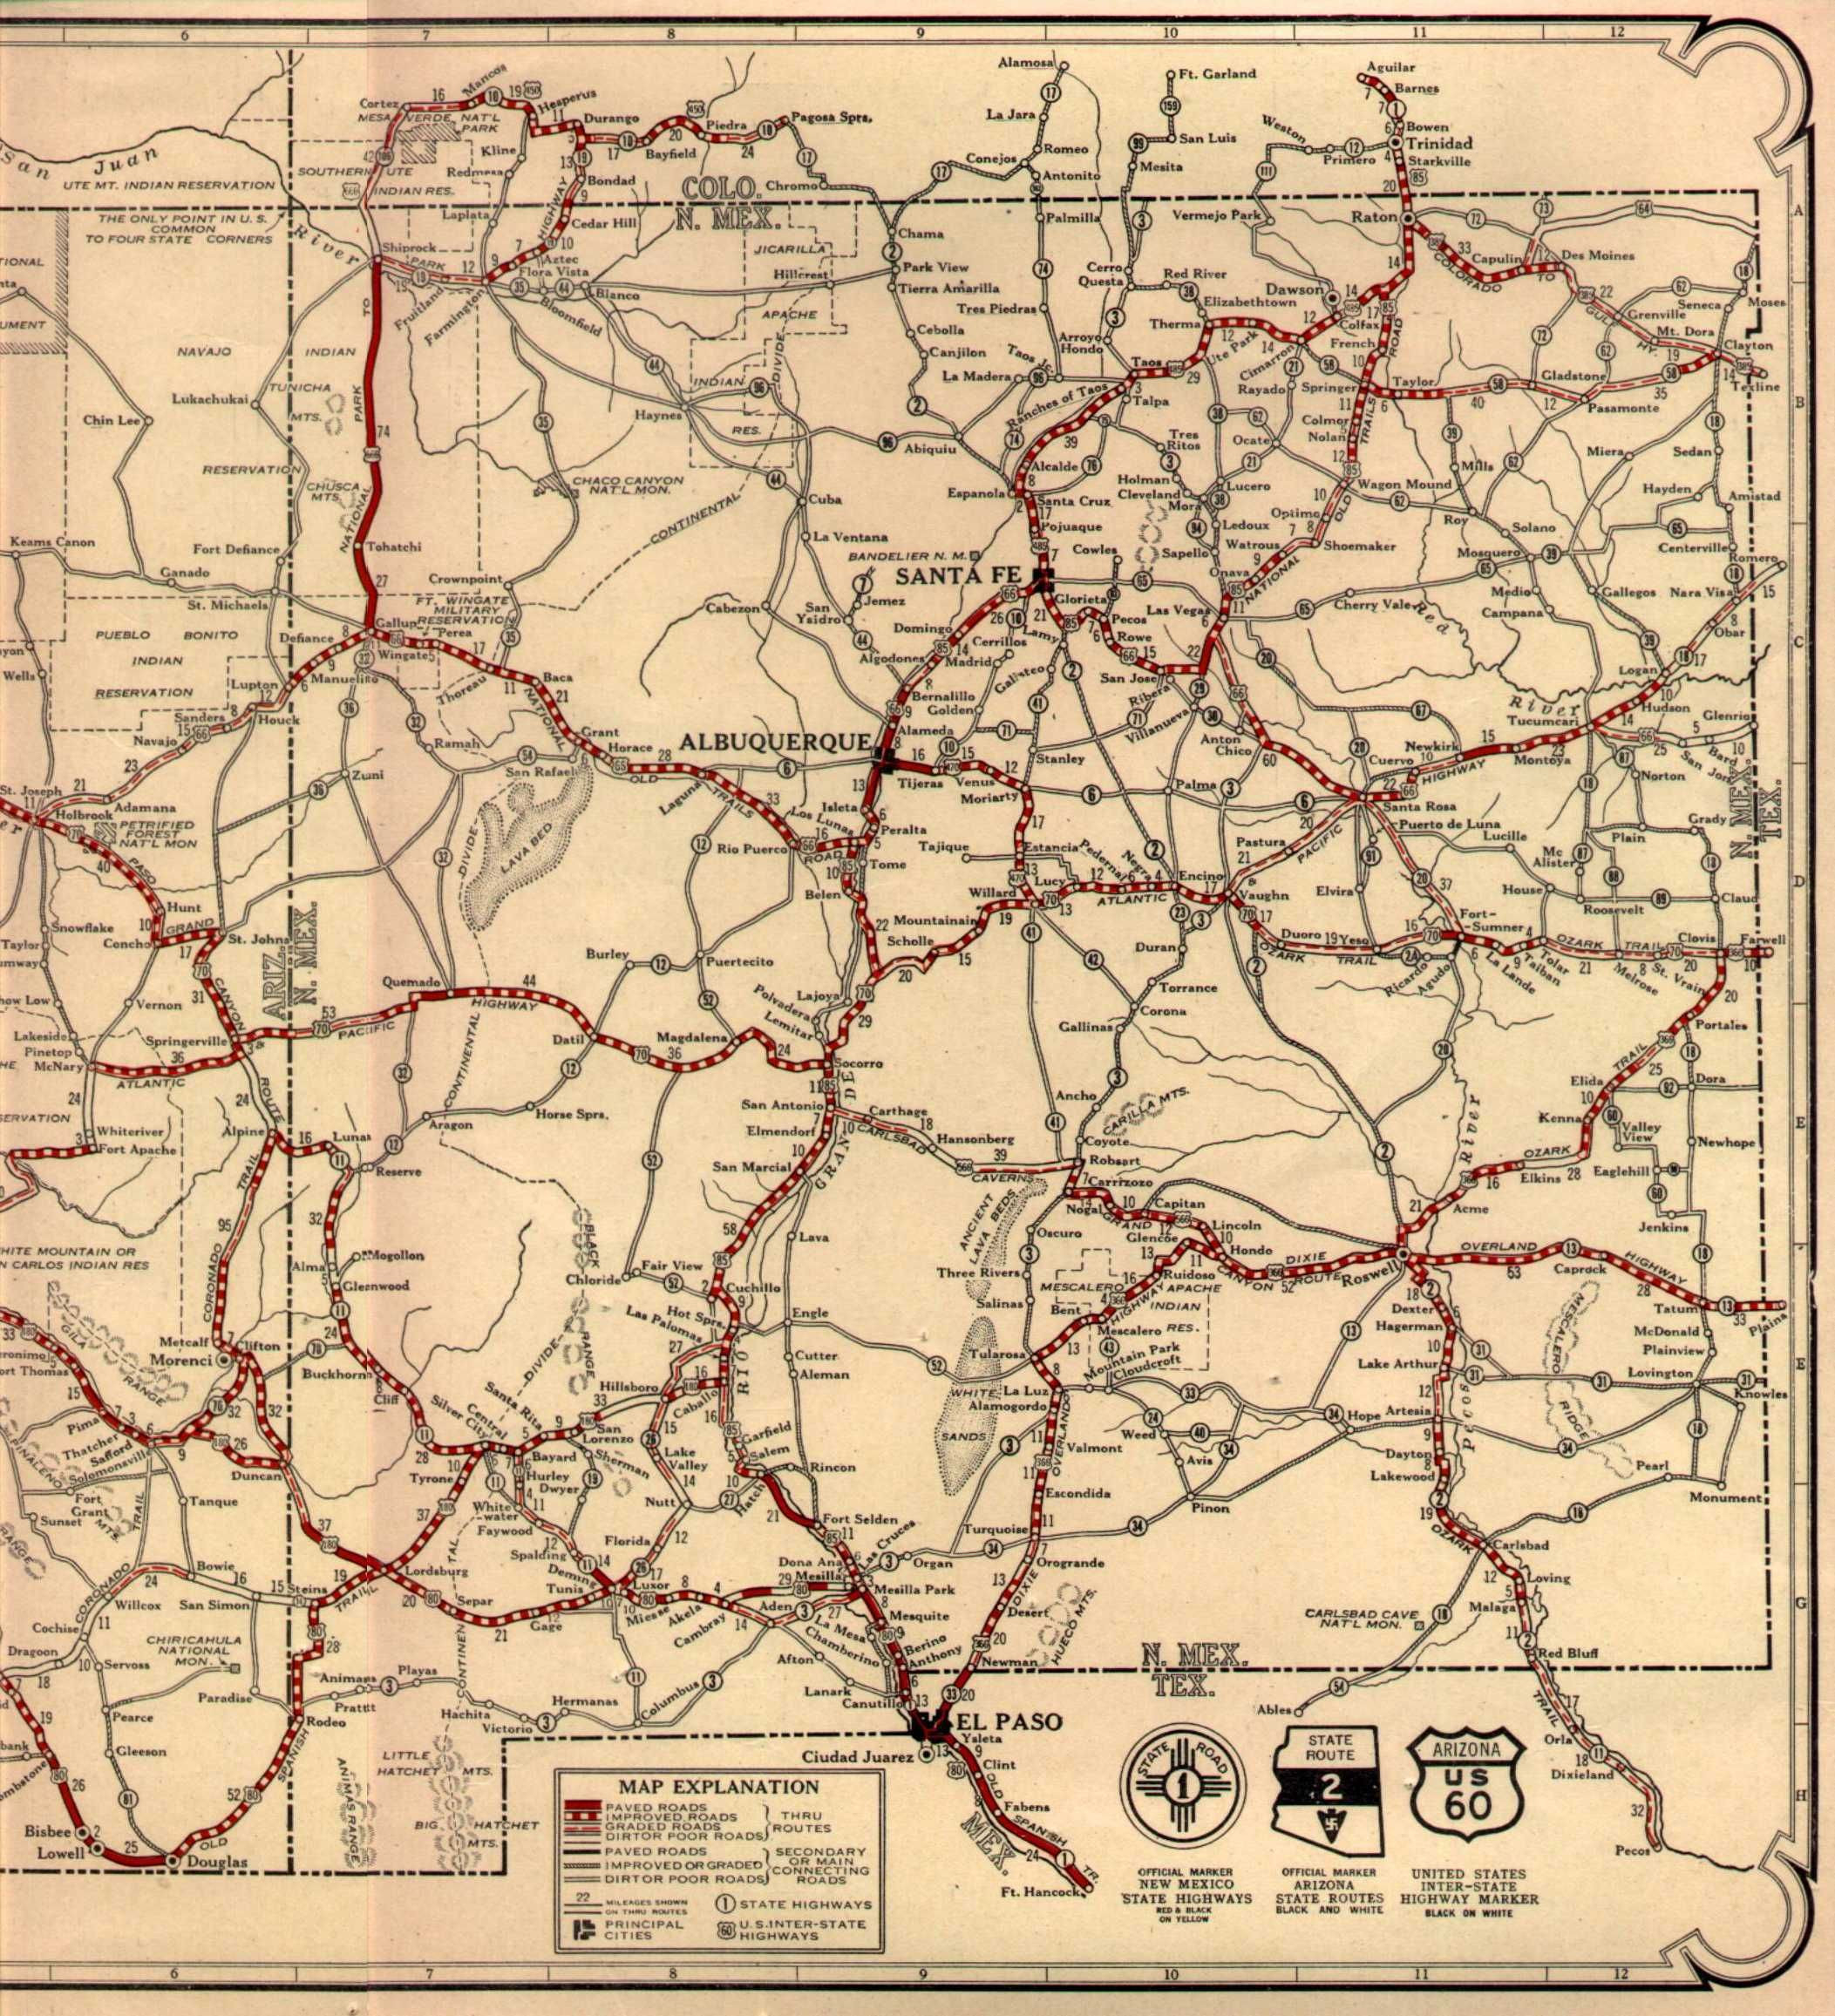 Map Of Route 66 In California Free Printable Route 66 On 1926 Az Nm - Free Printable Route 66 Map